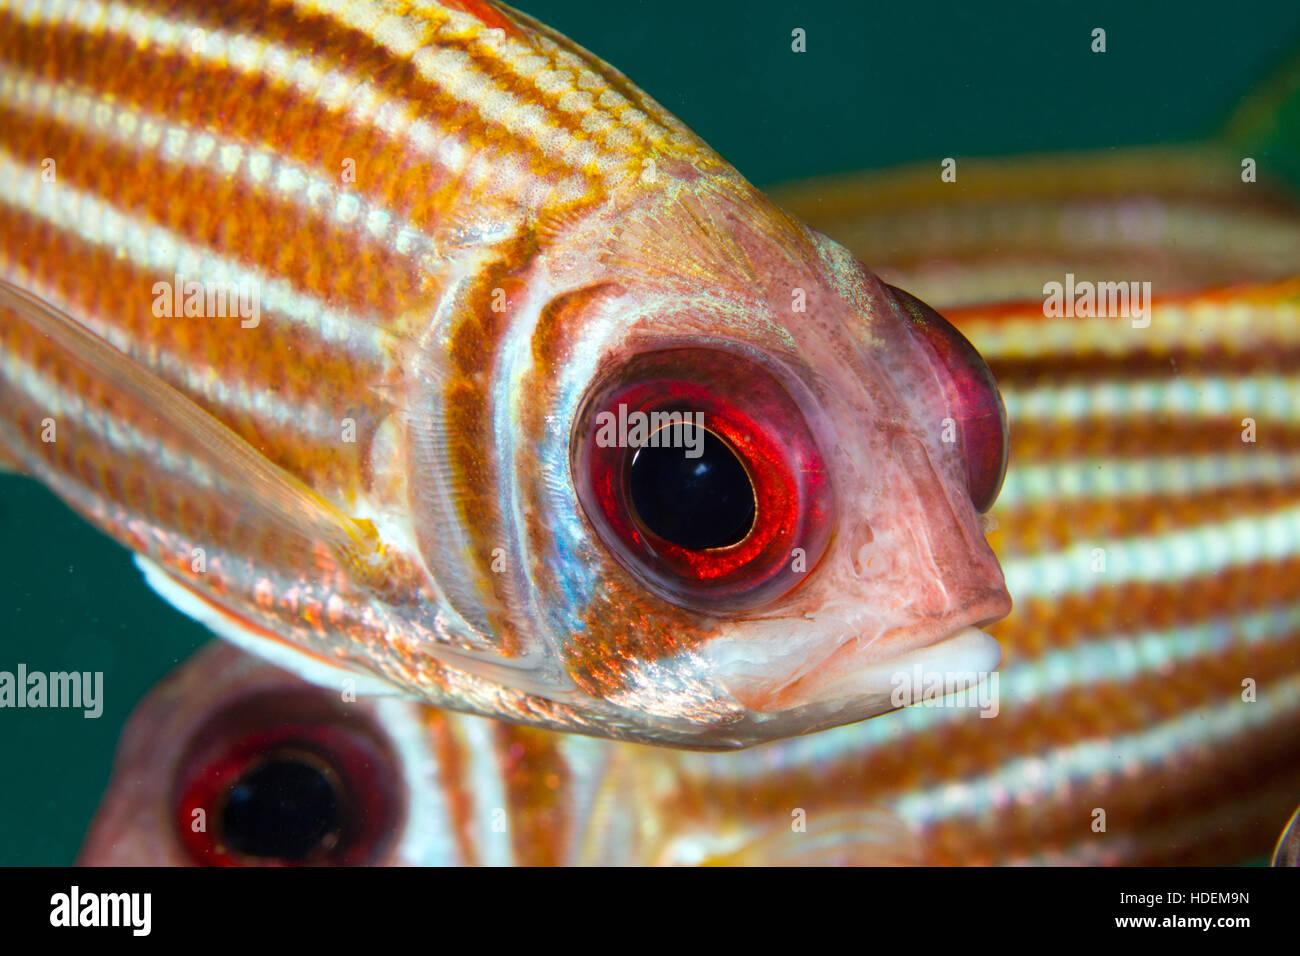 Squirrel fish up close. Underwater marine like around Koh Tao, Thailand. - Stock Image